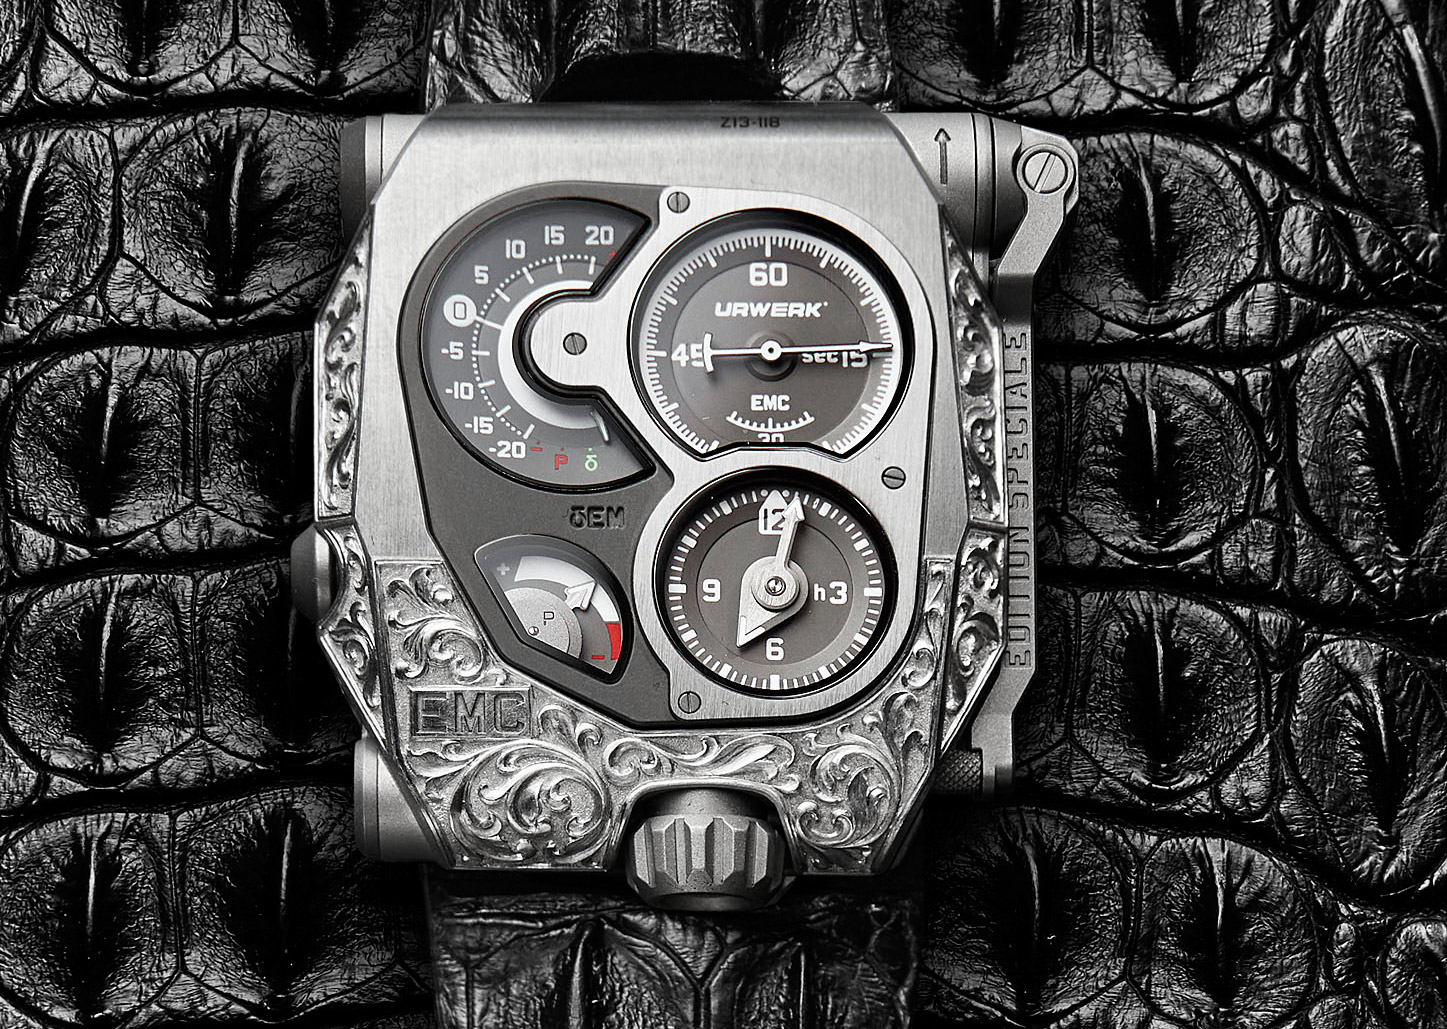 The EMC Pistol Watch by URWERK